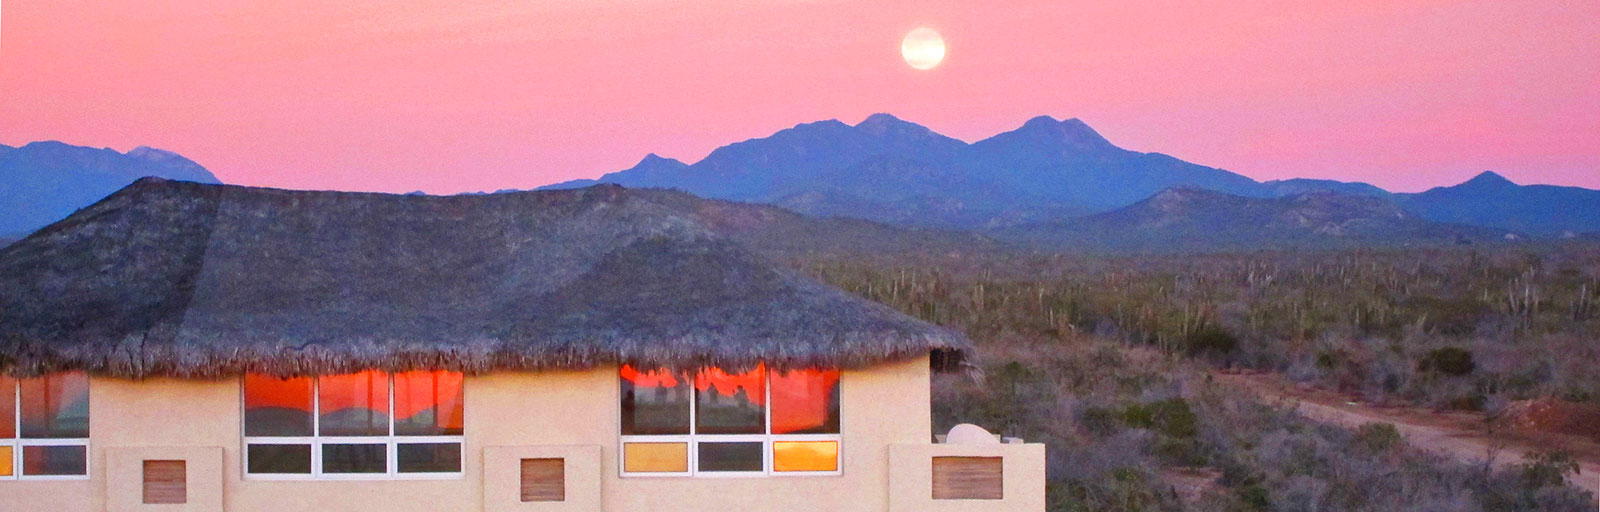 Mexico Yoga Retreat Yoga Studio: Moonrise Over One Yoga Studio